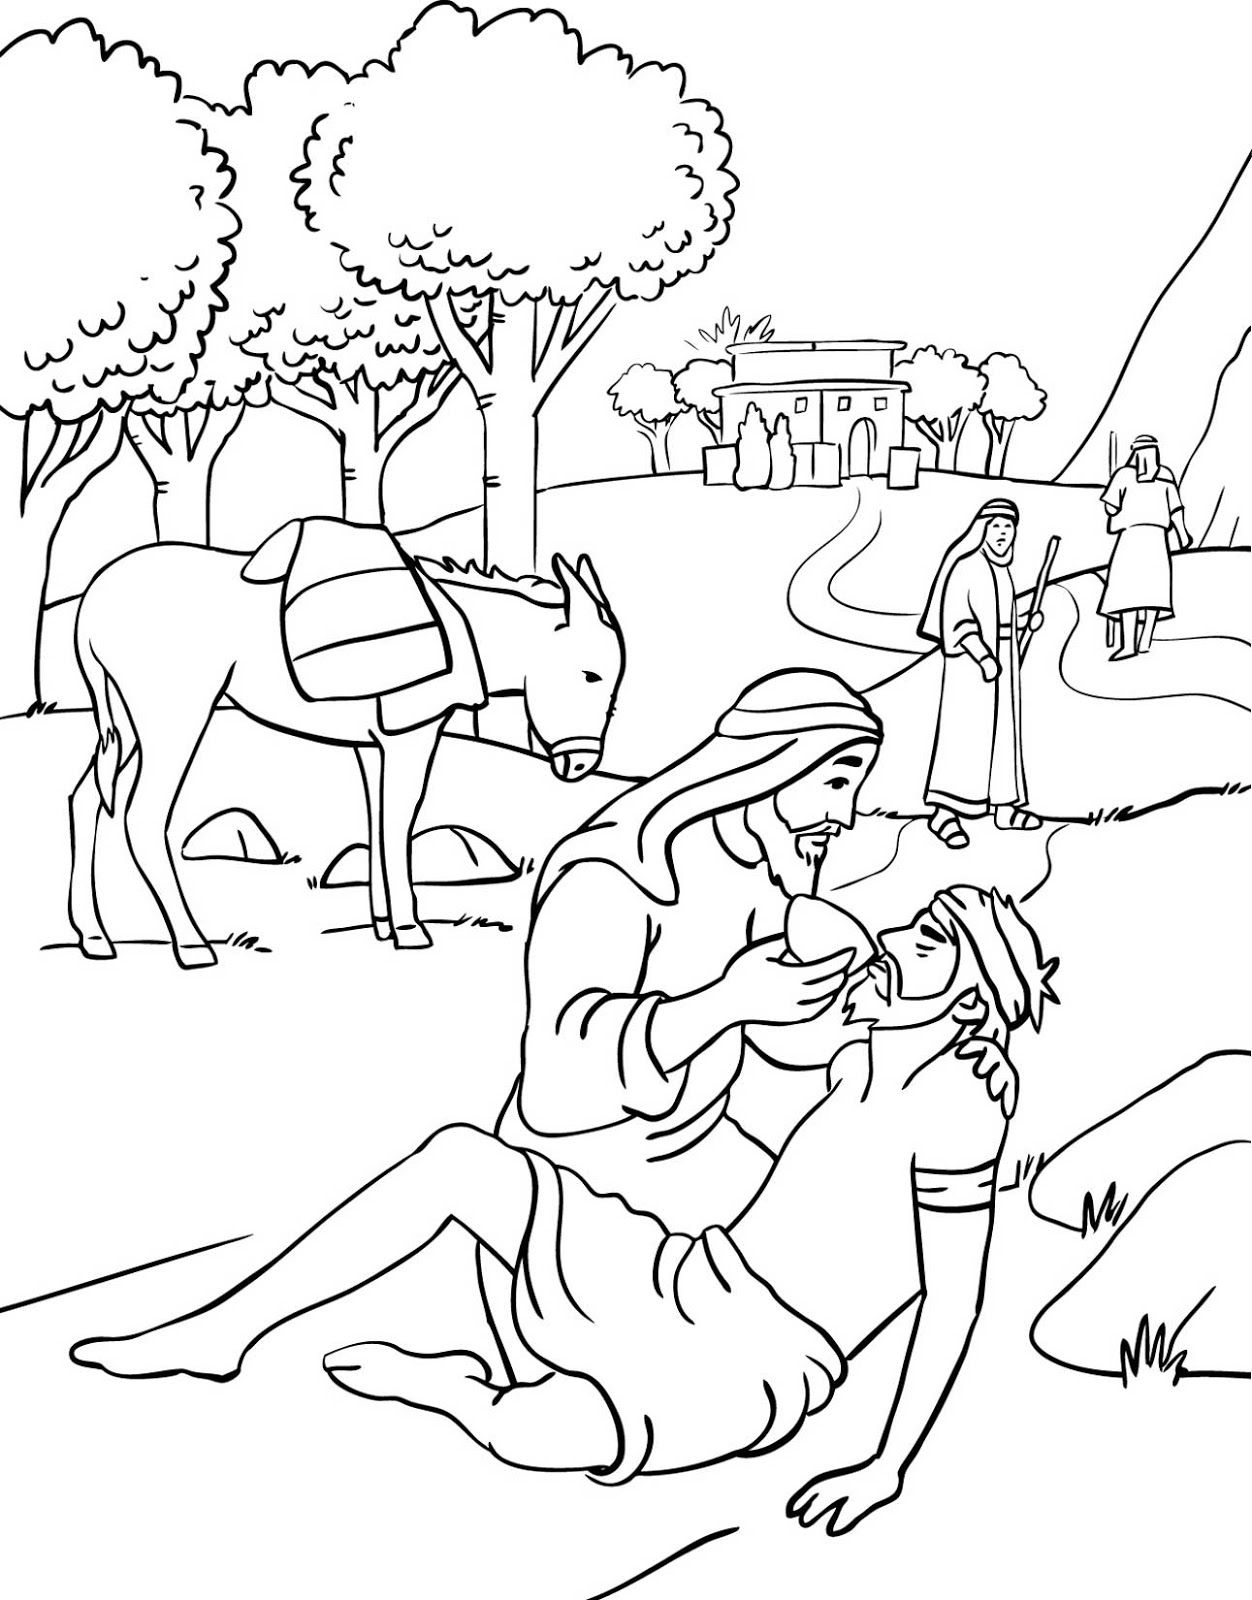 Good Samaritan Coloring Pages - Best Coloring Pages For Kids